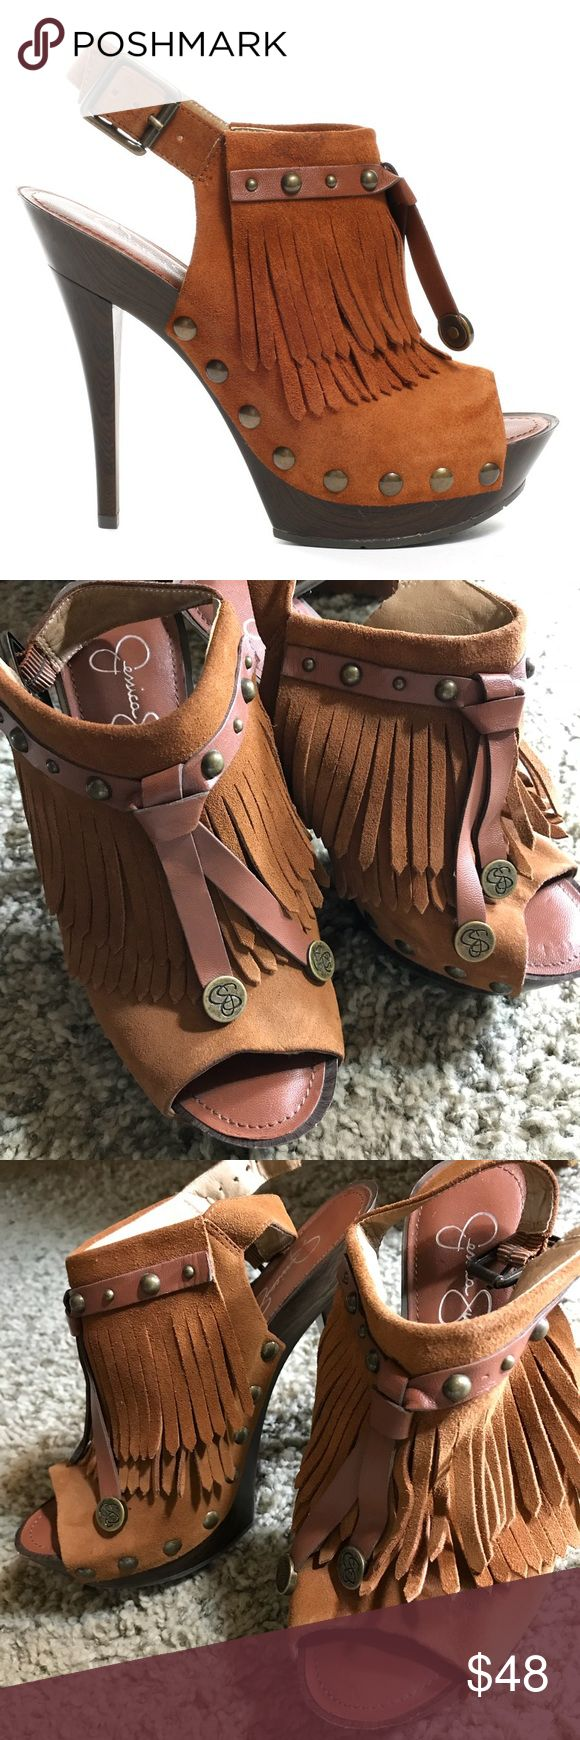 """Jessica Simpson peep toe leather fringed heels Brown Geni Heel suede leather, plastic woodgrain heel. Trendy style that goes with a variety of outfits, from jeans to long boho peasant skirts.  Pair has barely been worn. The inside of shoes is like new. On one shoe, the fringe is in disarray, as the shoe has been lying on its side in a closet, but it can be """"trained"""" back into shape once properly stored.  Some very minor scuffs. Plastic caps on heels show some wear, but the rubber sole looks…"""